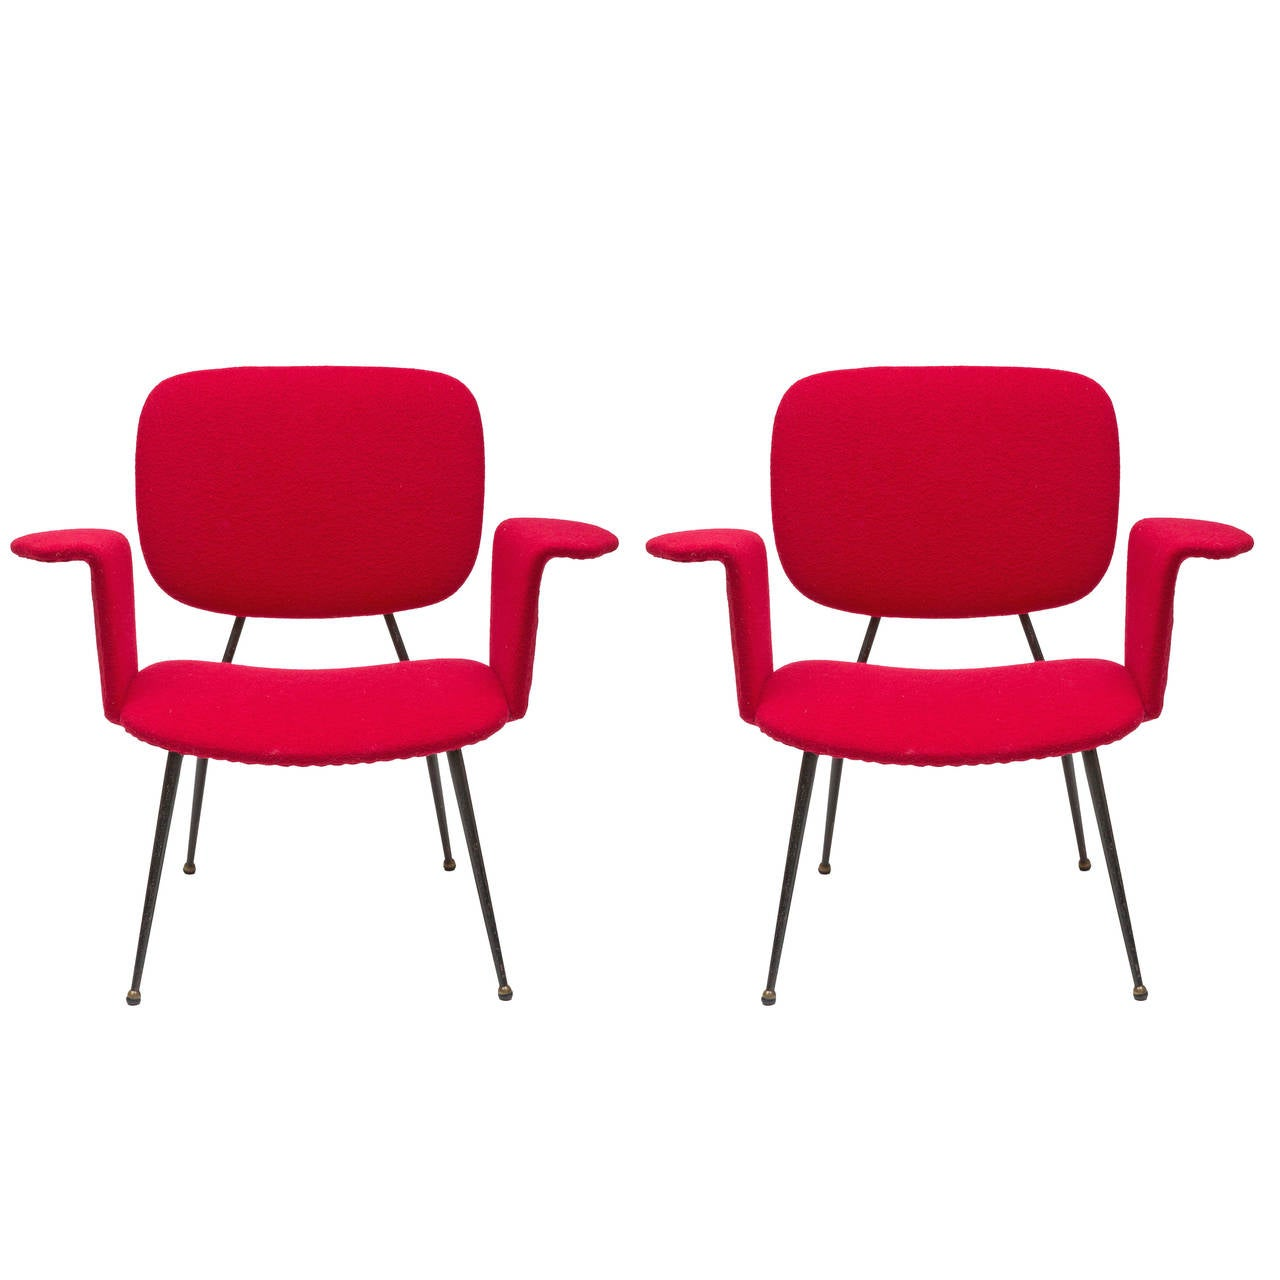 Mid century modern aile chairs for sale